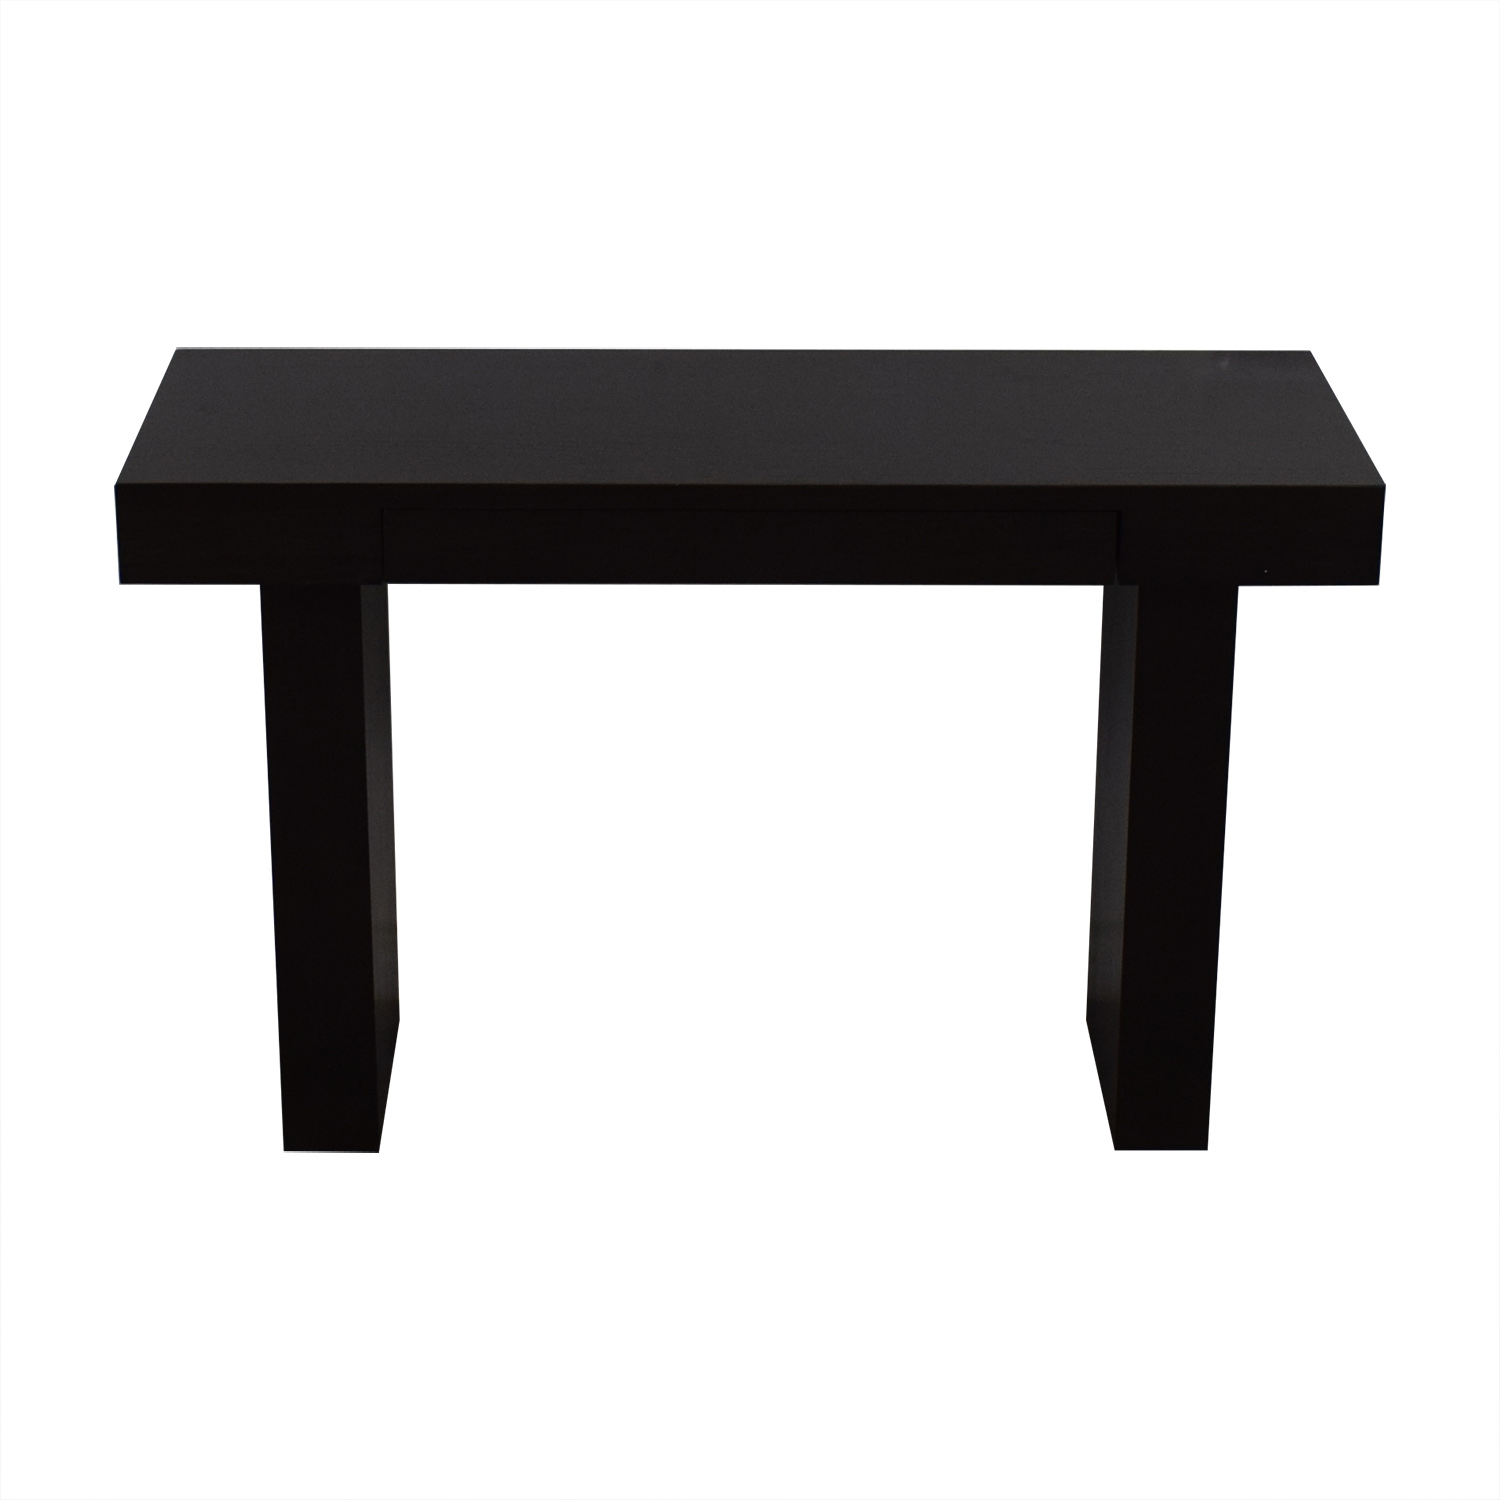 West Elm West Elm Terra Console Table coupon